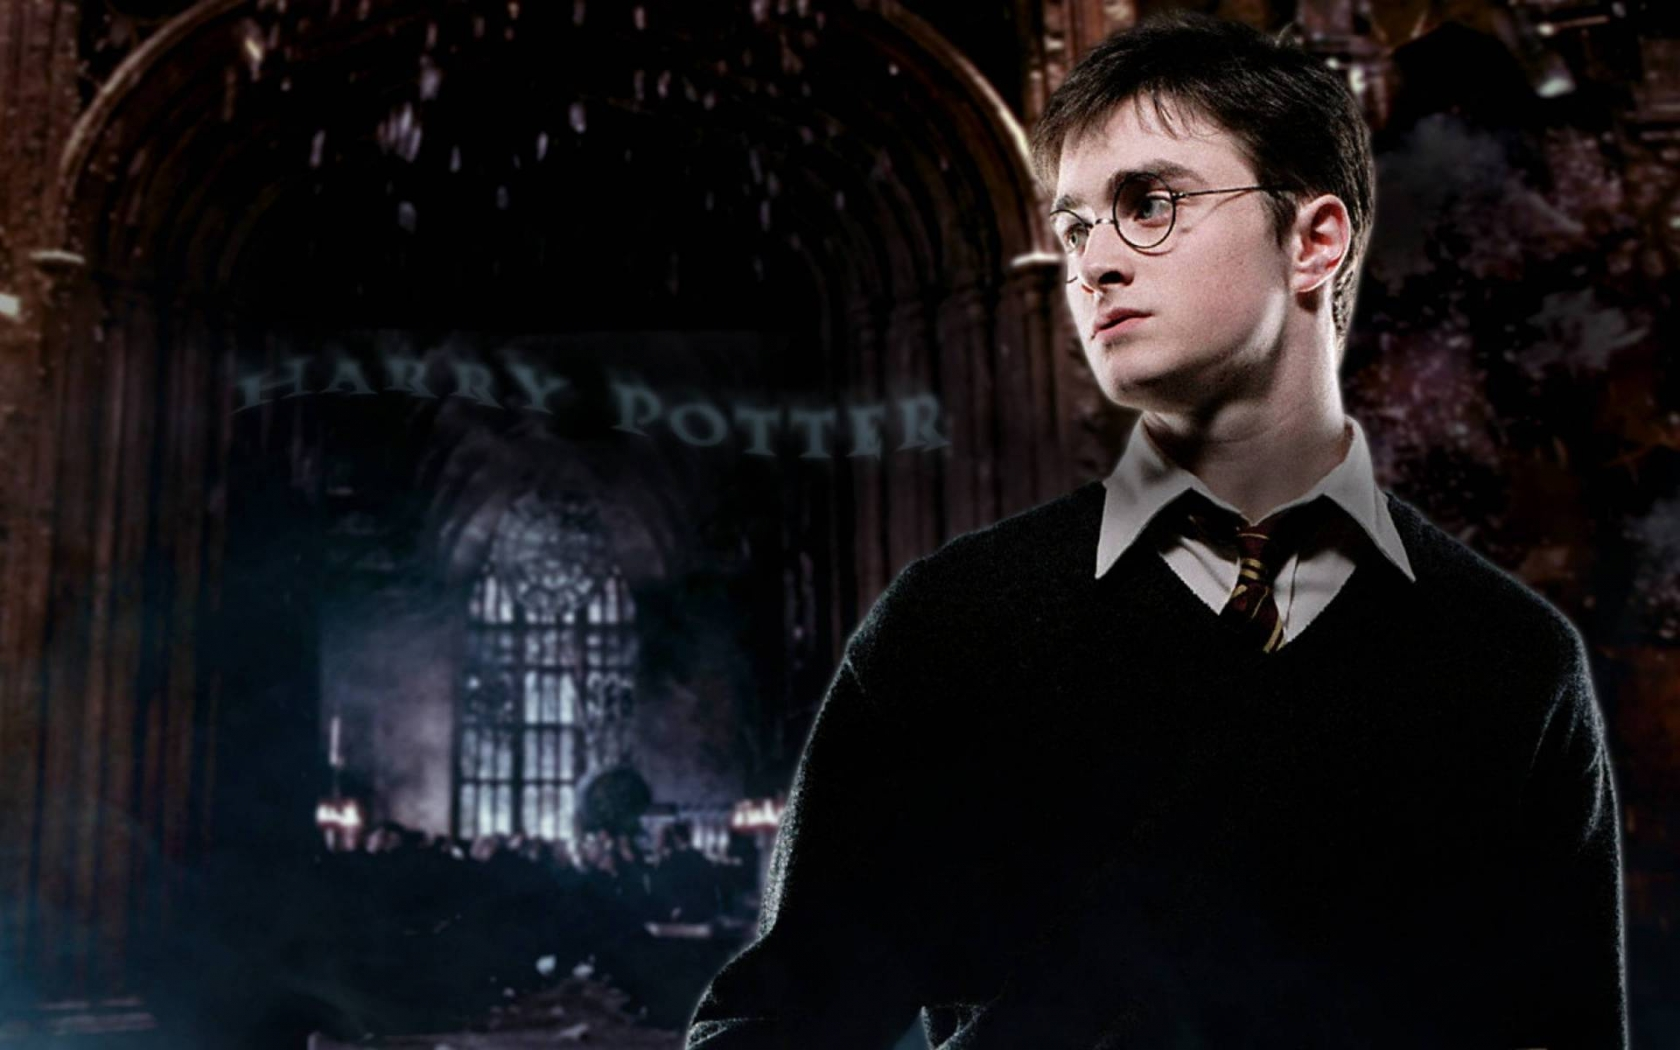 Harry Potter Daniel Radcliffe for 1680 x 1050 widescreen resolution